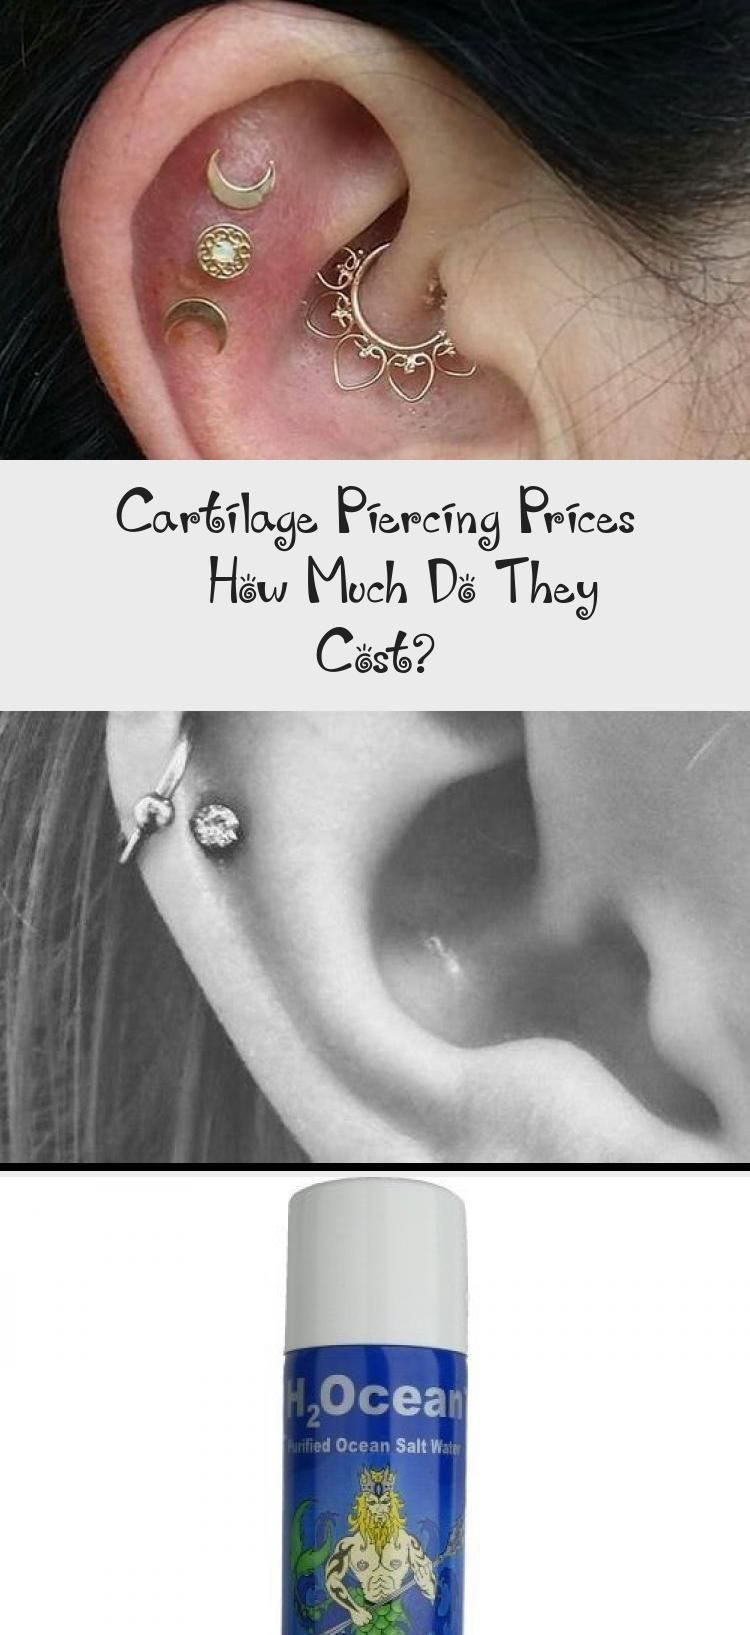 cd15081ac03fde826bacb93e5f79eddc - How Much Does It Cost To Get Your Nose Pierced At Claire S